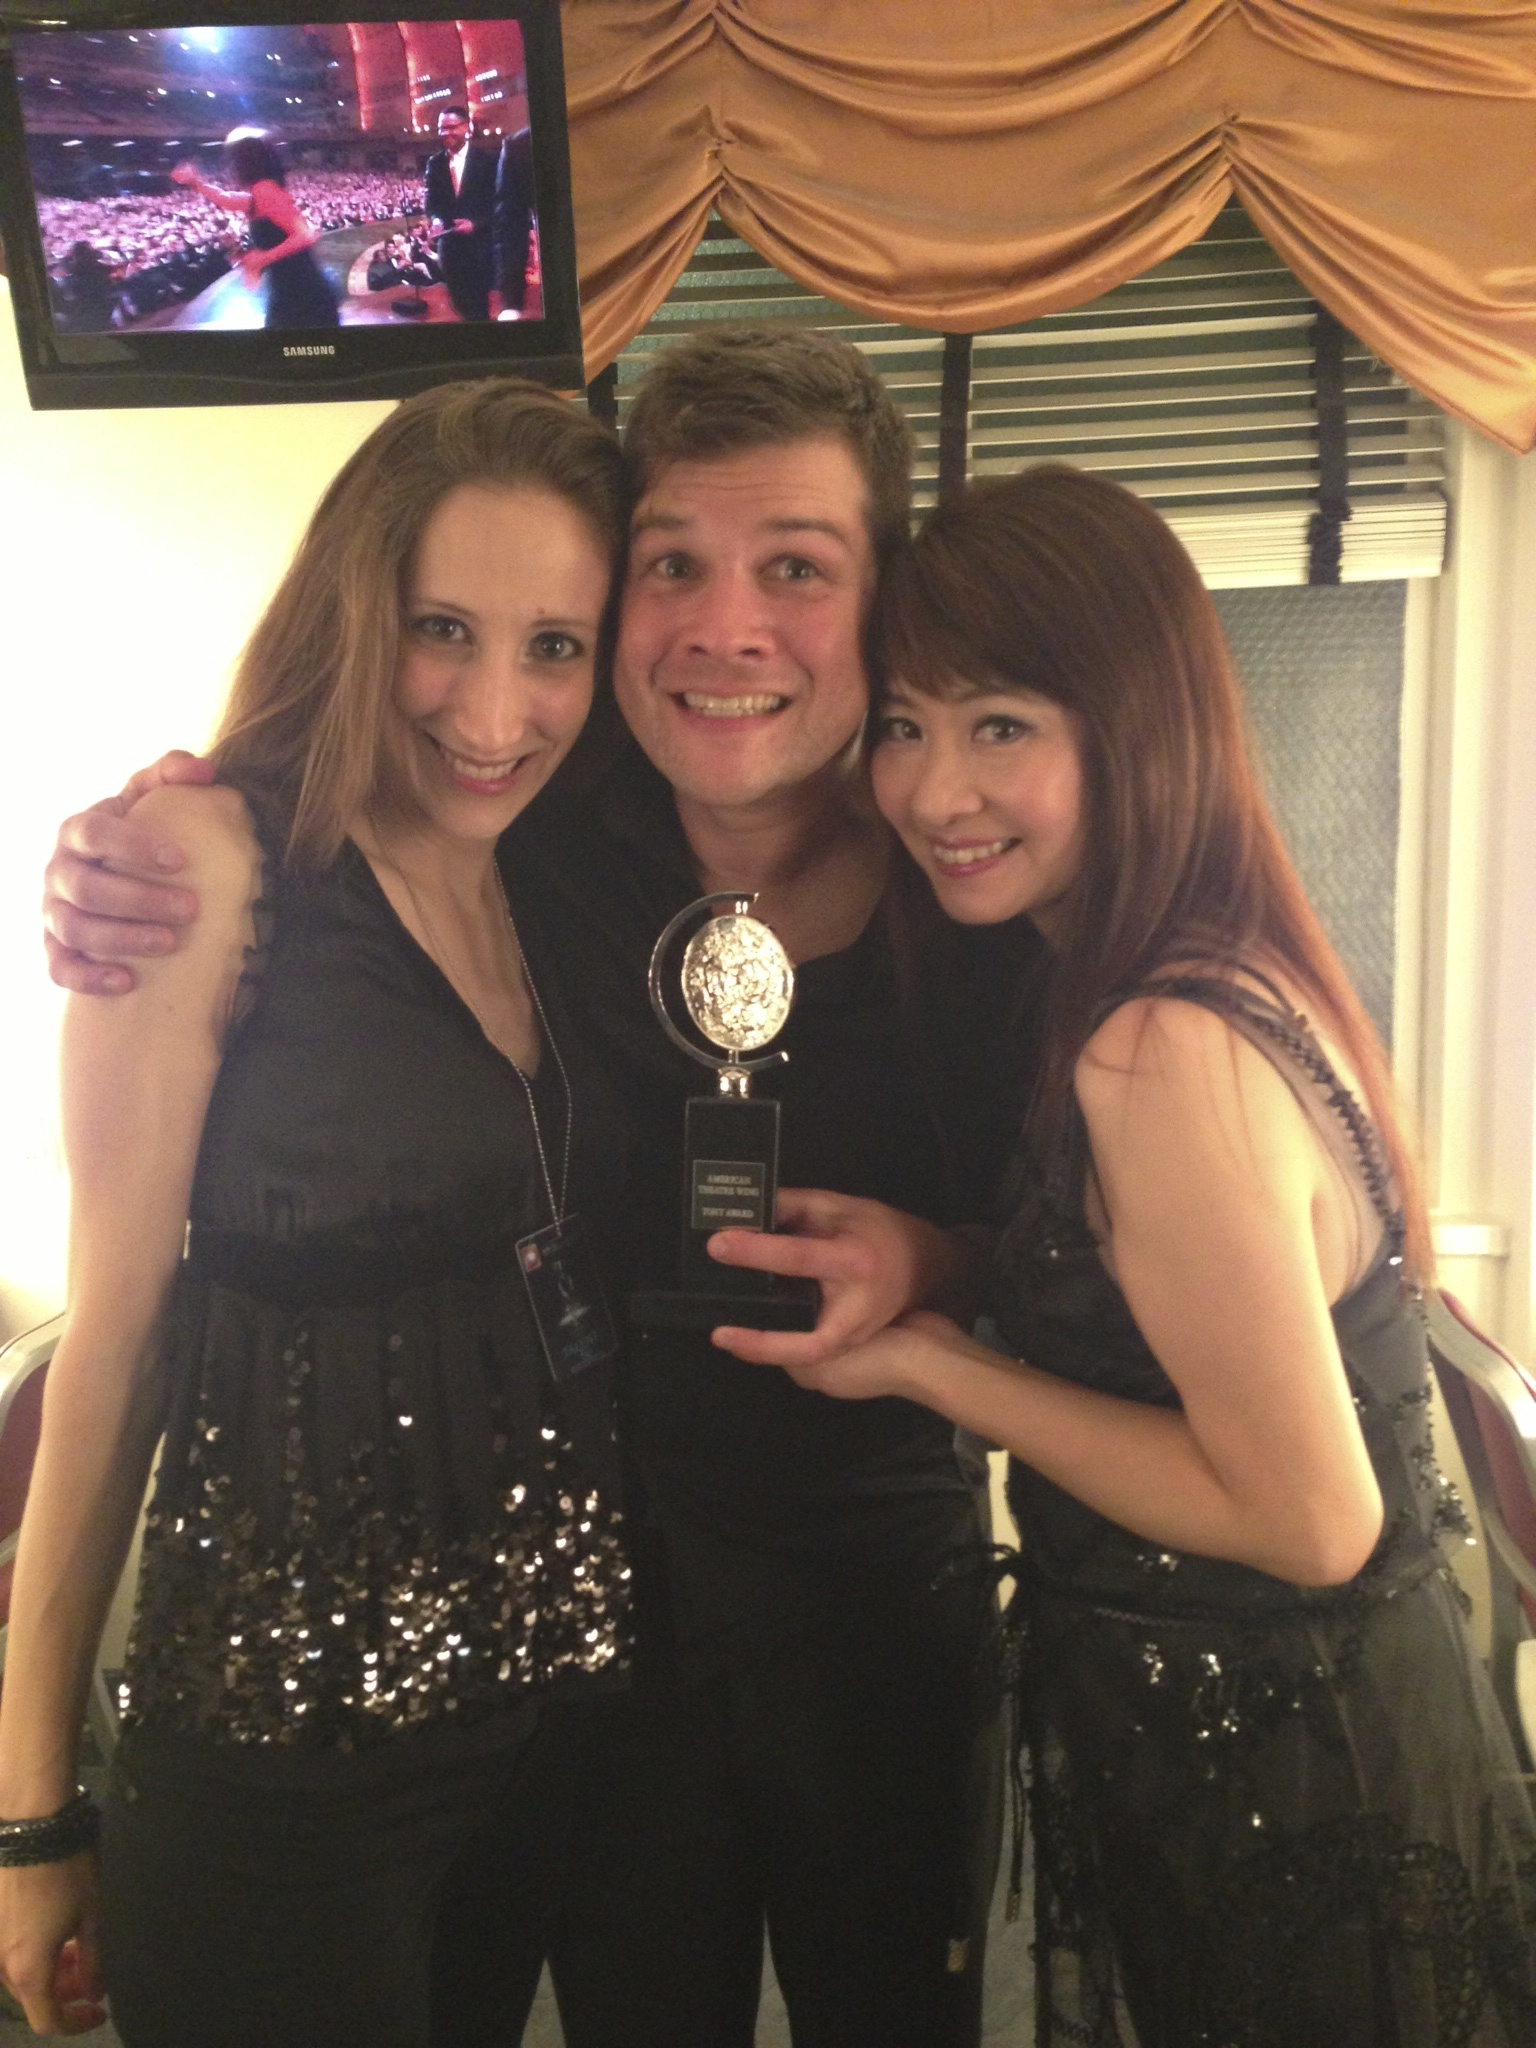 2013 Tony Awards. Hiroko and Allison backstage with Stephen Oremus after his Tony win for Best Orchestrations!